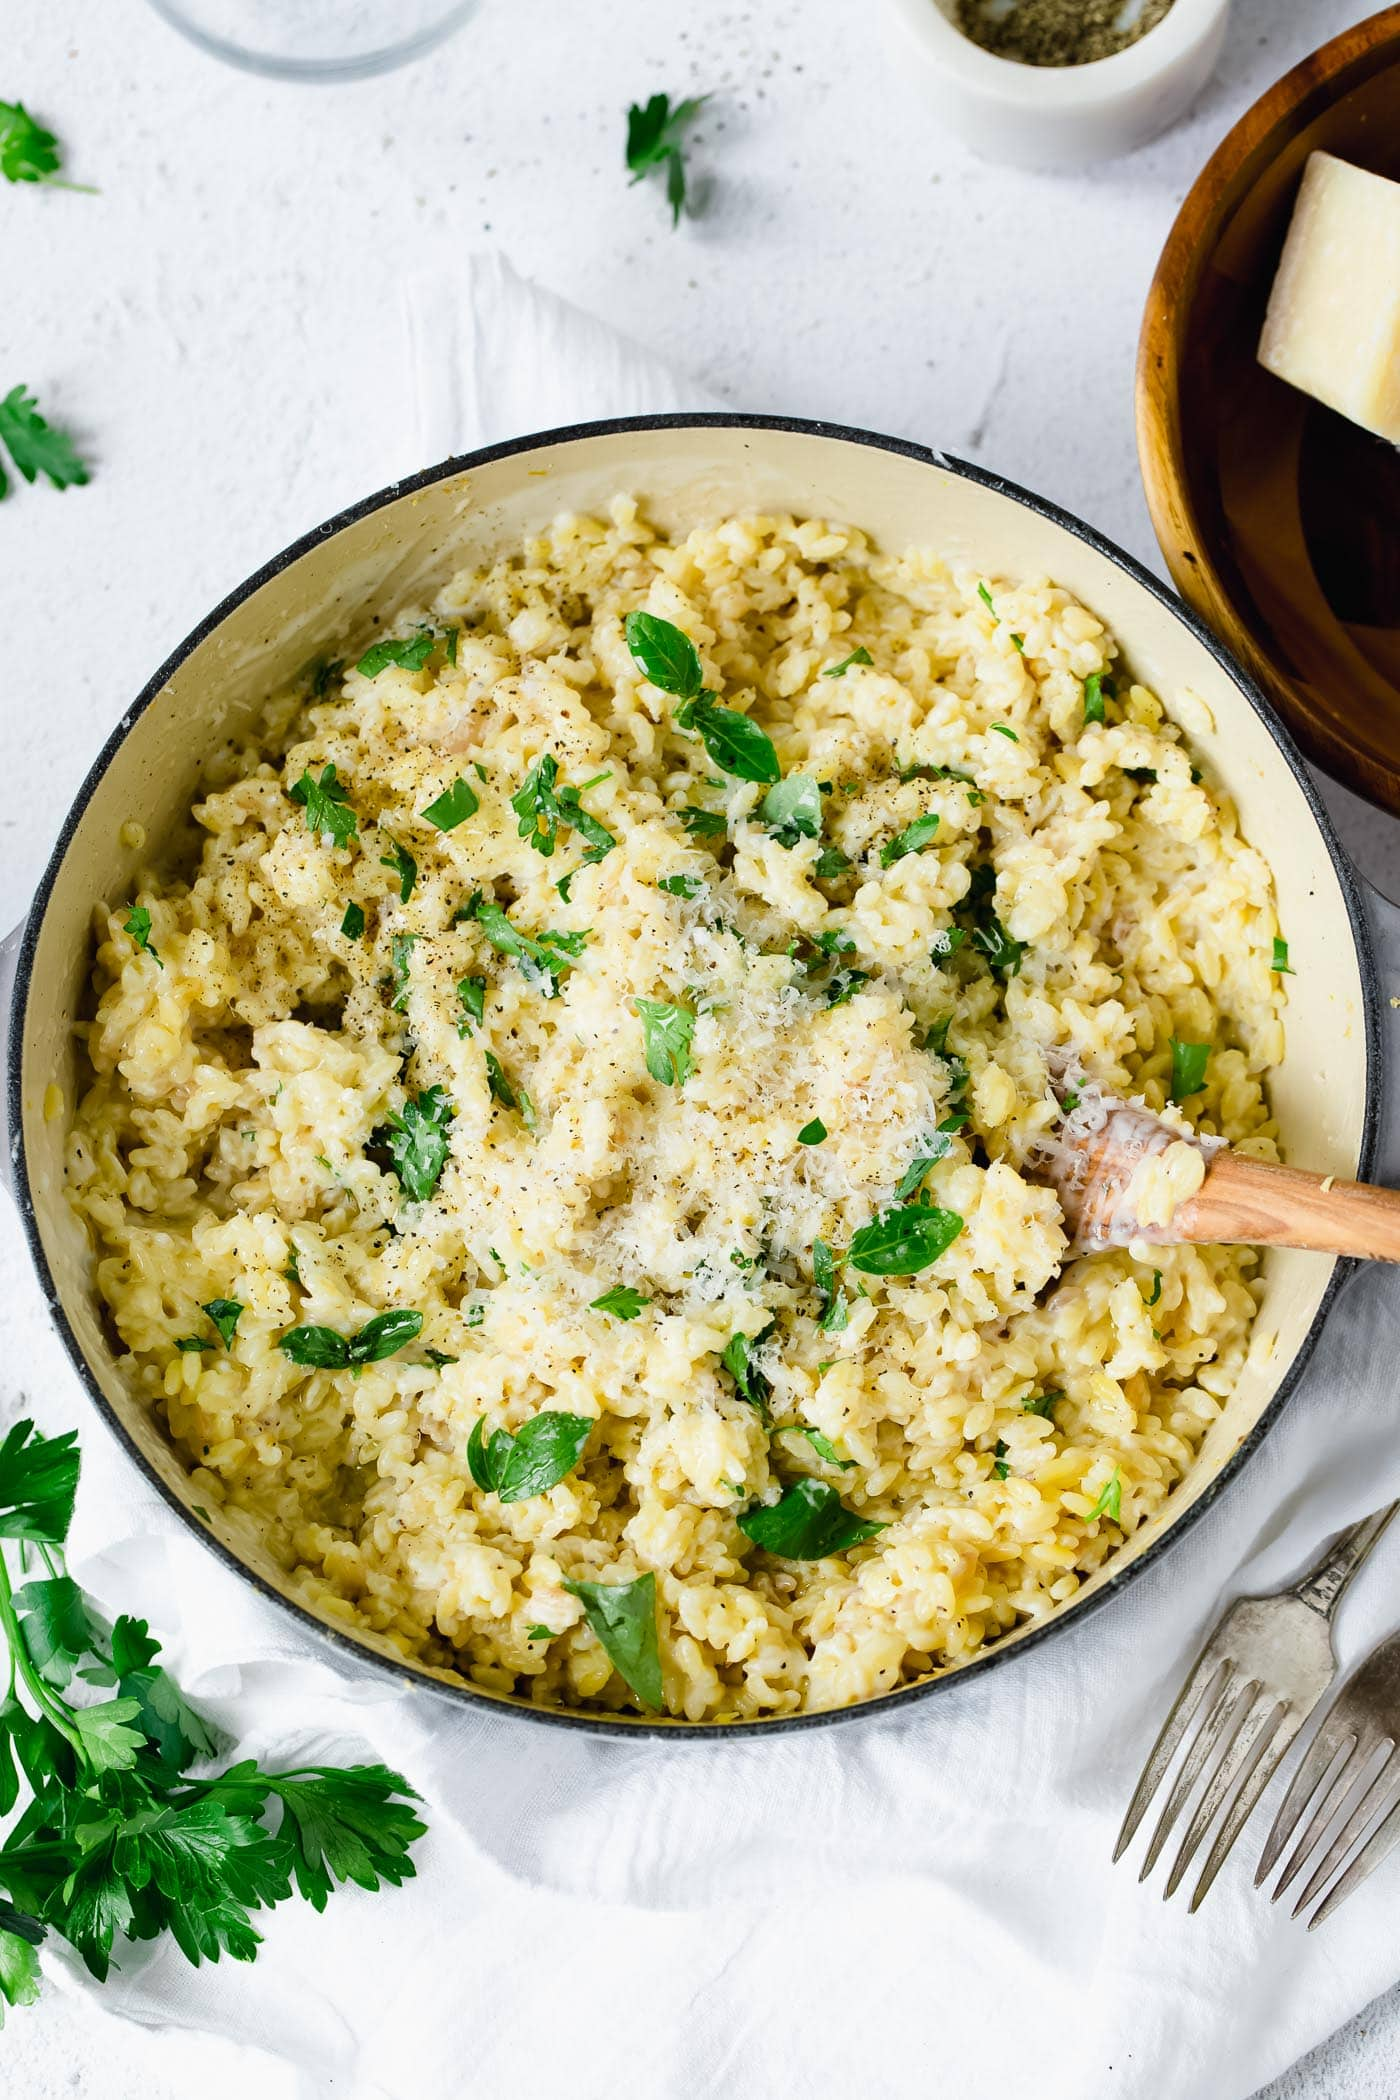 A serving bowl of creamy orzo. There is a wooden spoon in the pasta and the pasta is mixed in a creamy white sauce with fresh thyme leaves. There are fresh thyme leaves and a couple of forks laying next to the bowl.